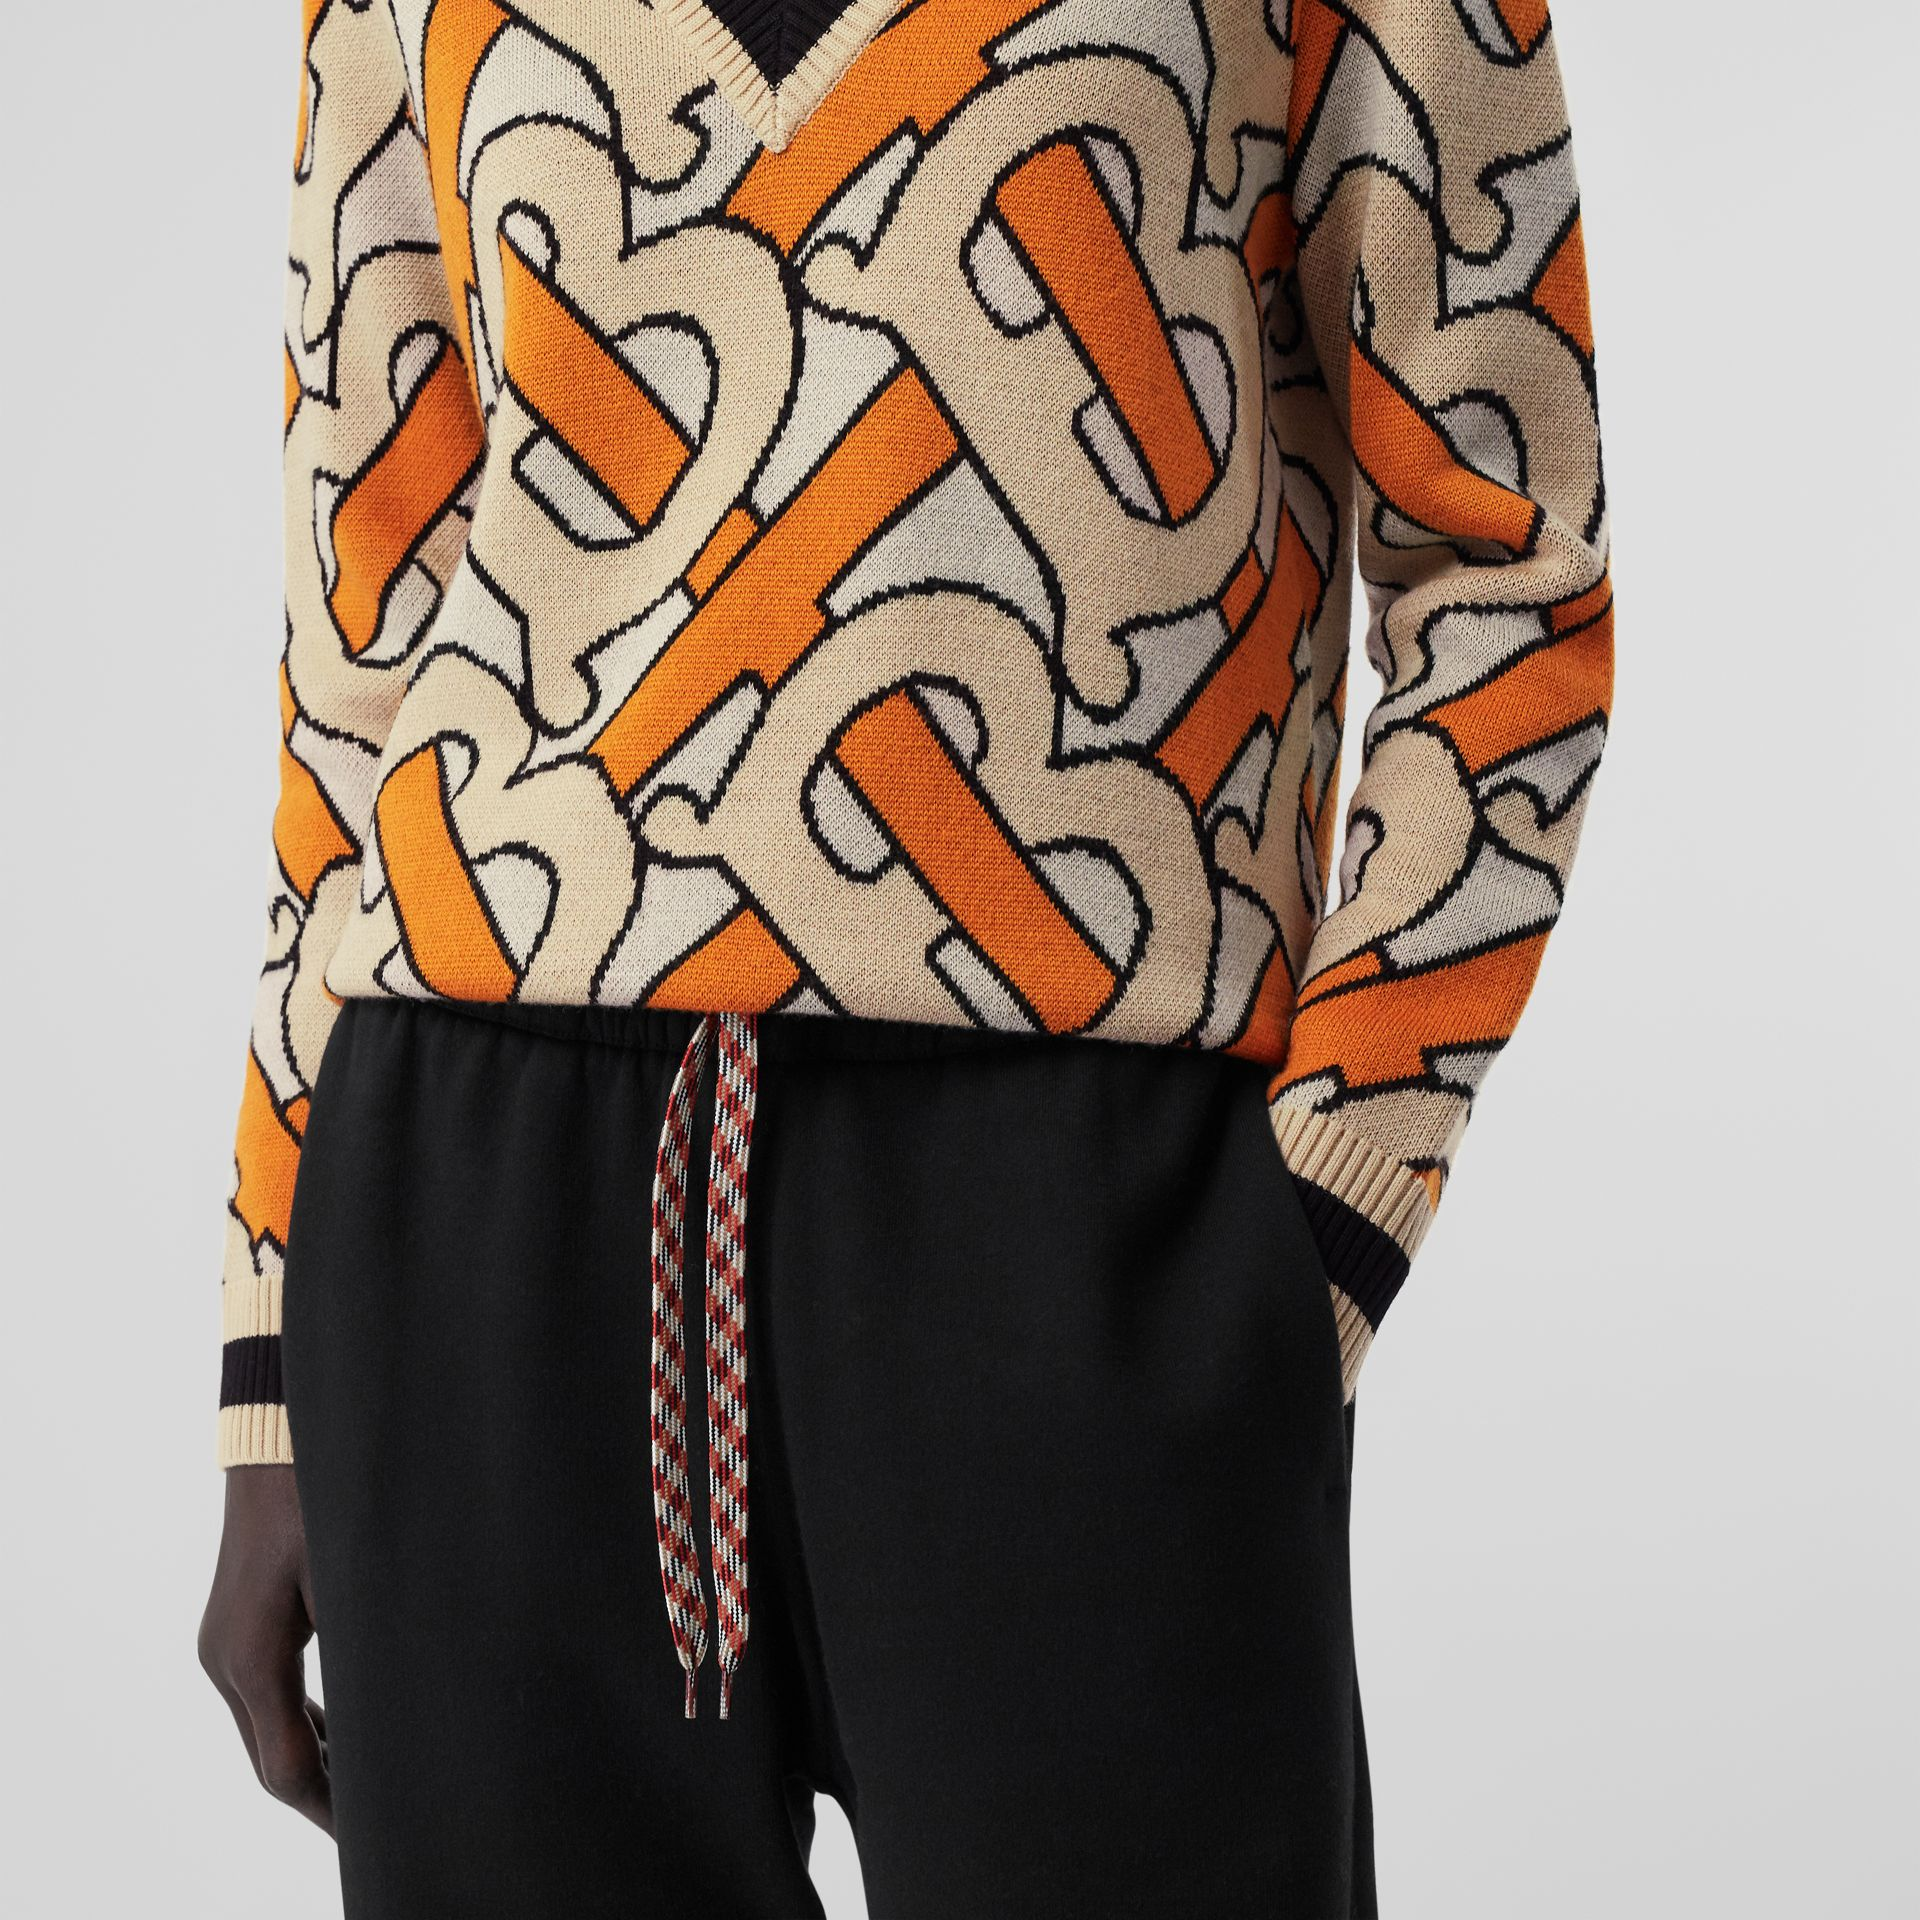 Monogram Intarsia Wool V-neck Sweater in Bright Orange - Women | Burberry Singapore - gallery image 4